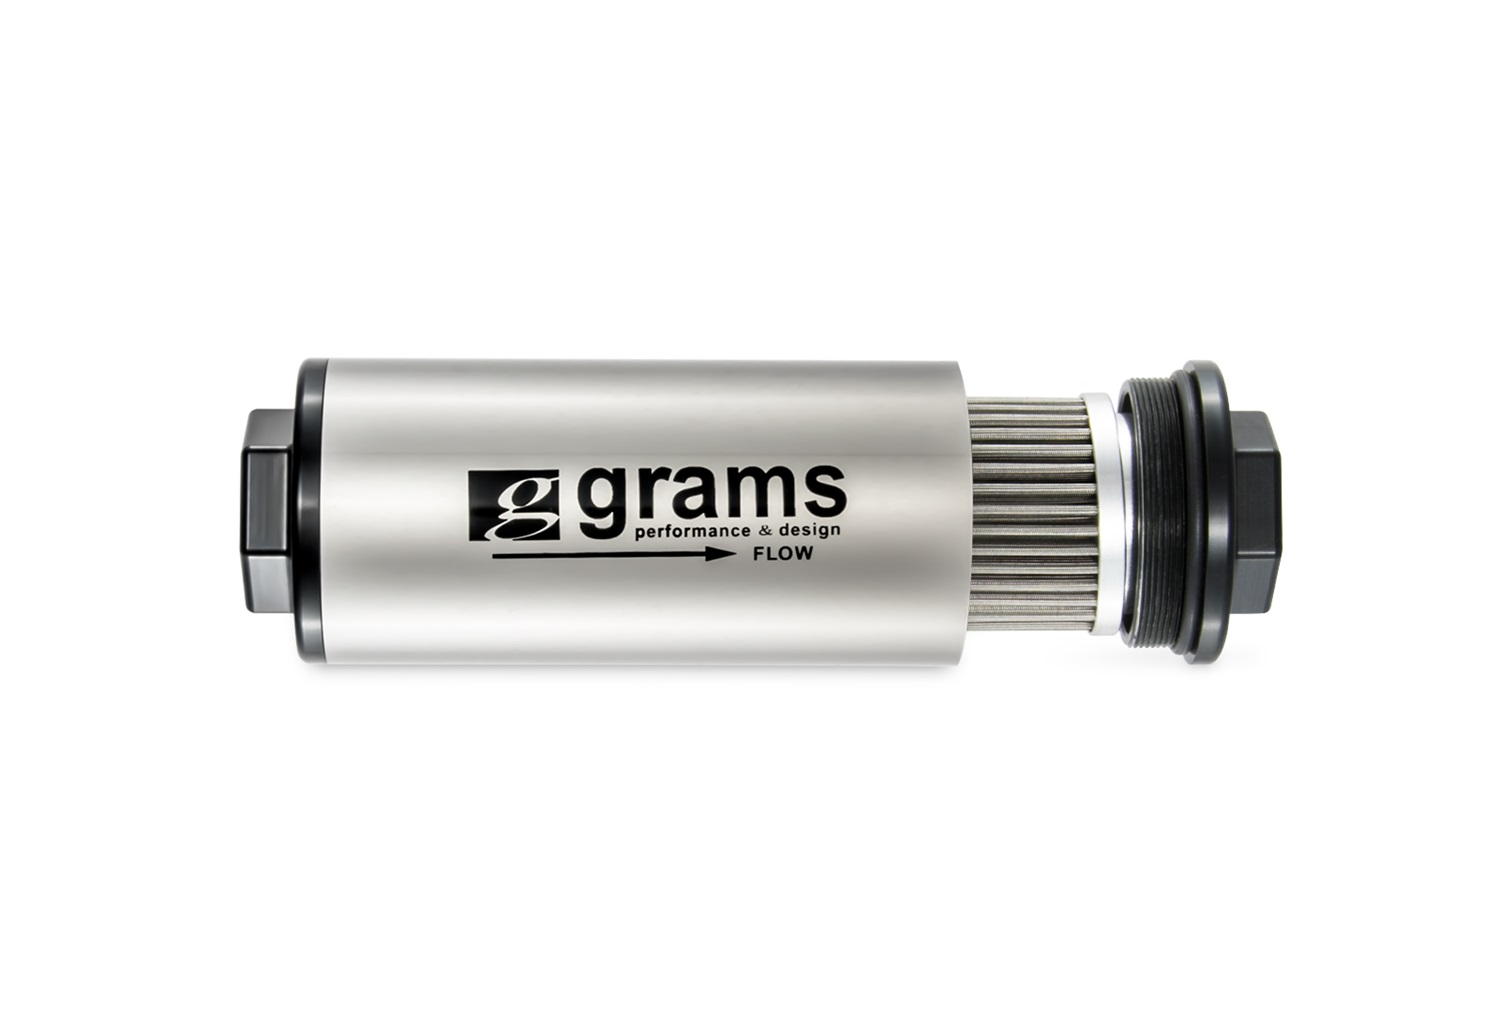 Grams Performance and Design G60-99-0020 Fuel Filter